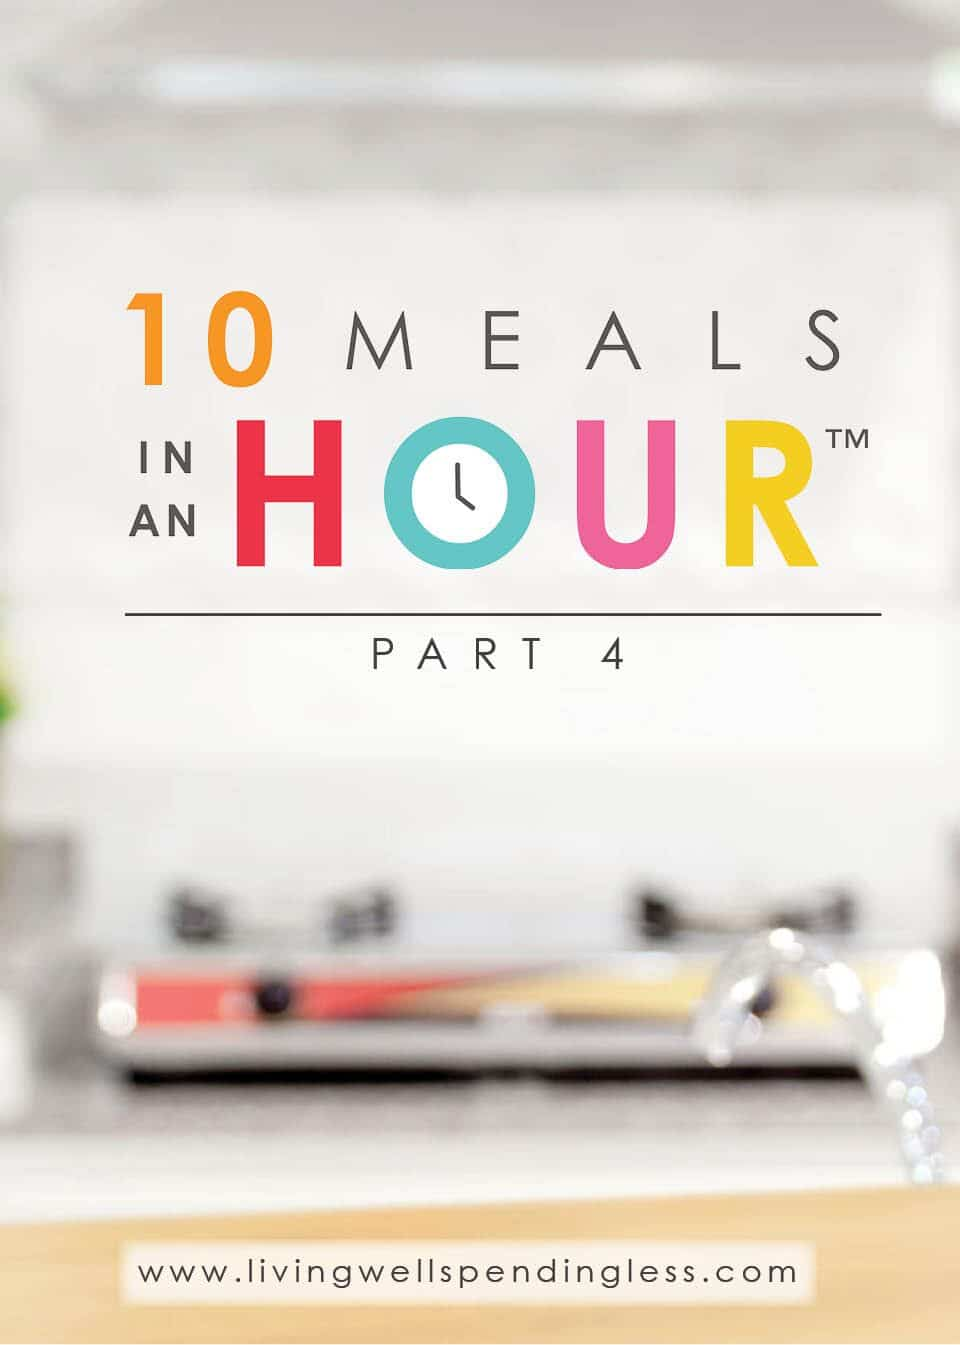 10 Meals in an Hour part 4 | Freezer Cooking | Freezer Meals | Meal Planning | Food Made Simple